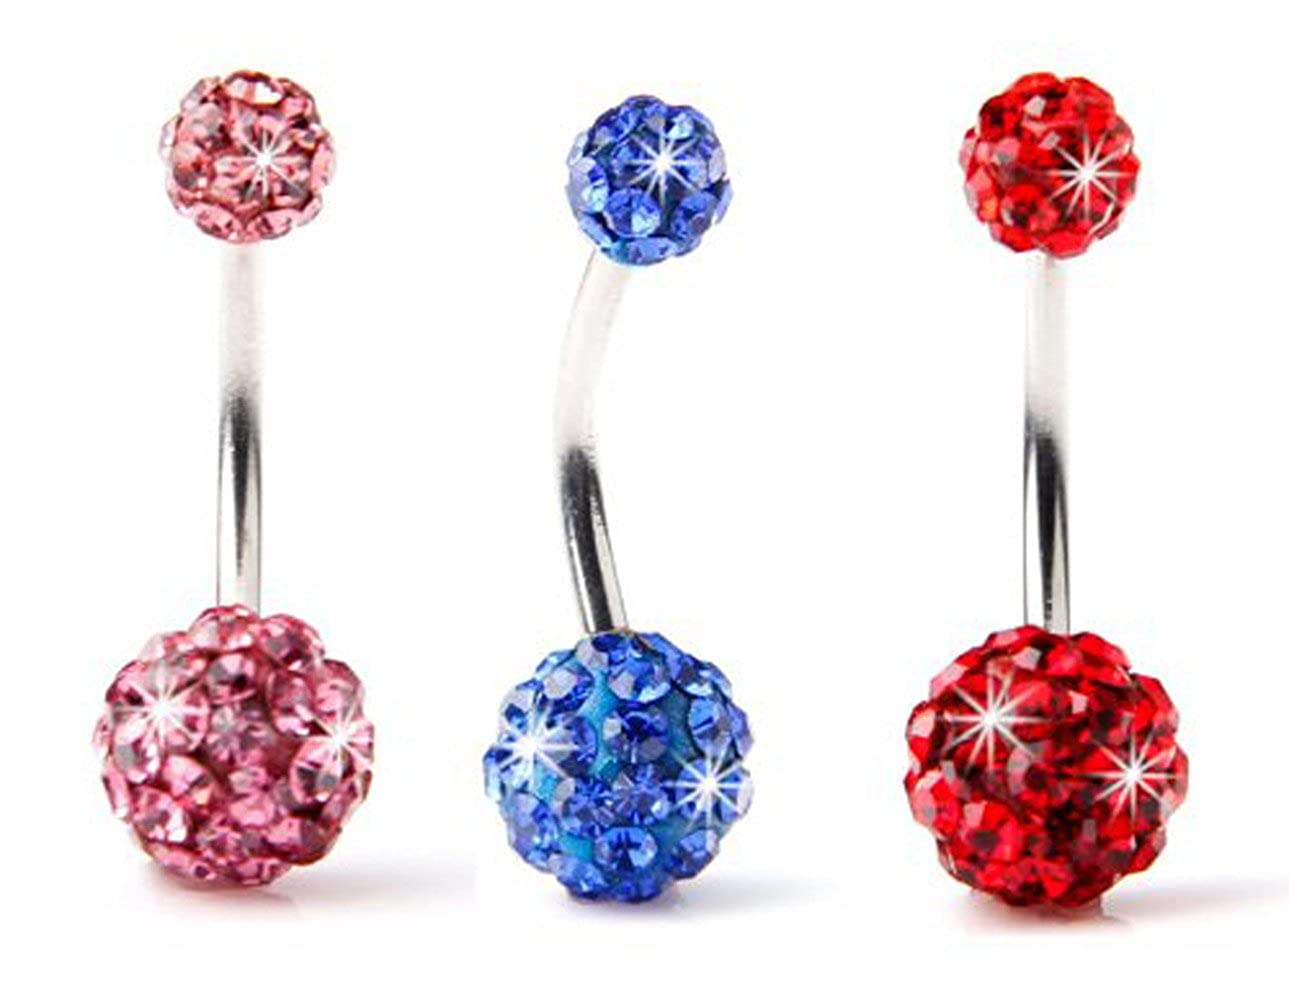 BODYA Lot of 3pc 14G Swarovski Crystal Double Gem jeweled Belly Button Ring Bling Body Jewelry Piercing Ring 3 Pack JW898+JW899+JW900